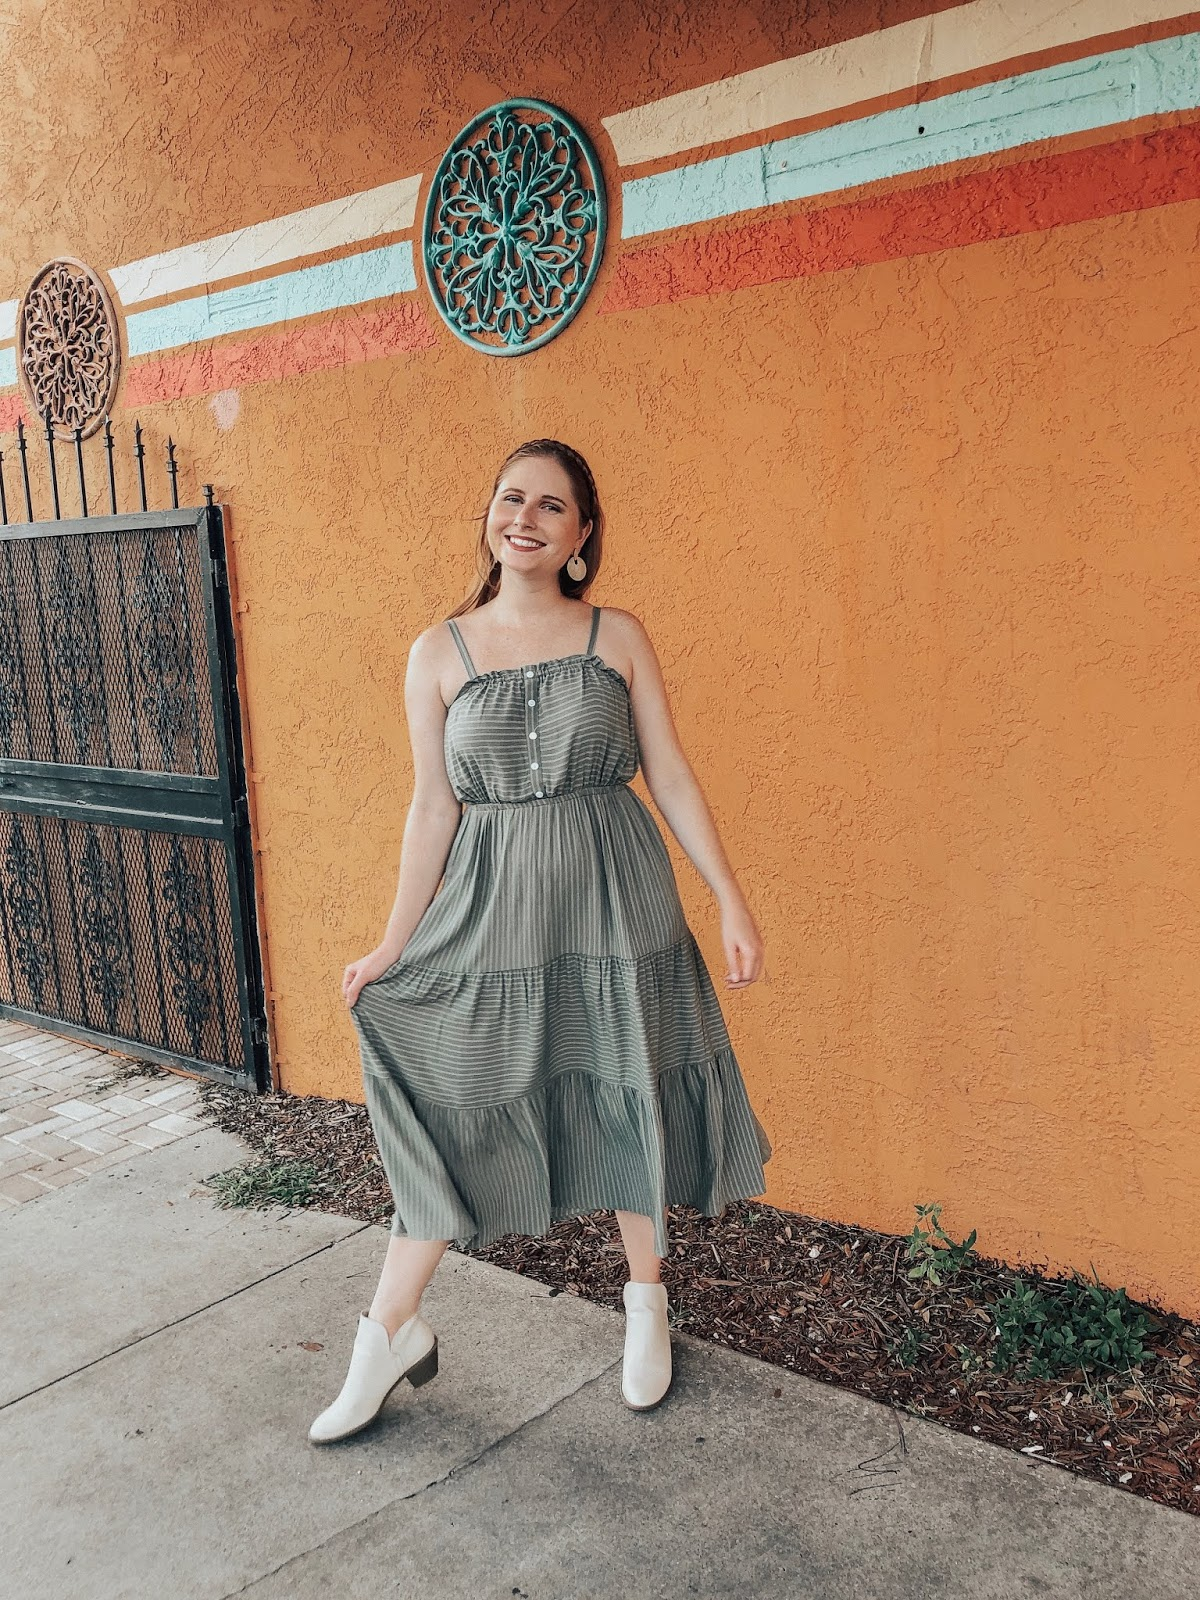 Women's Sleeveless Square Neck Button Front Tiered Midi Dress - Universal Thread™ Green | Affordable by Amanda Instagram Outfit Recap